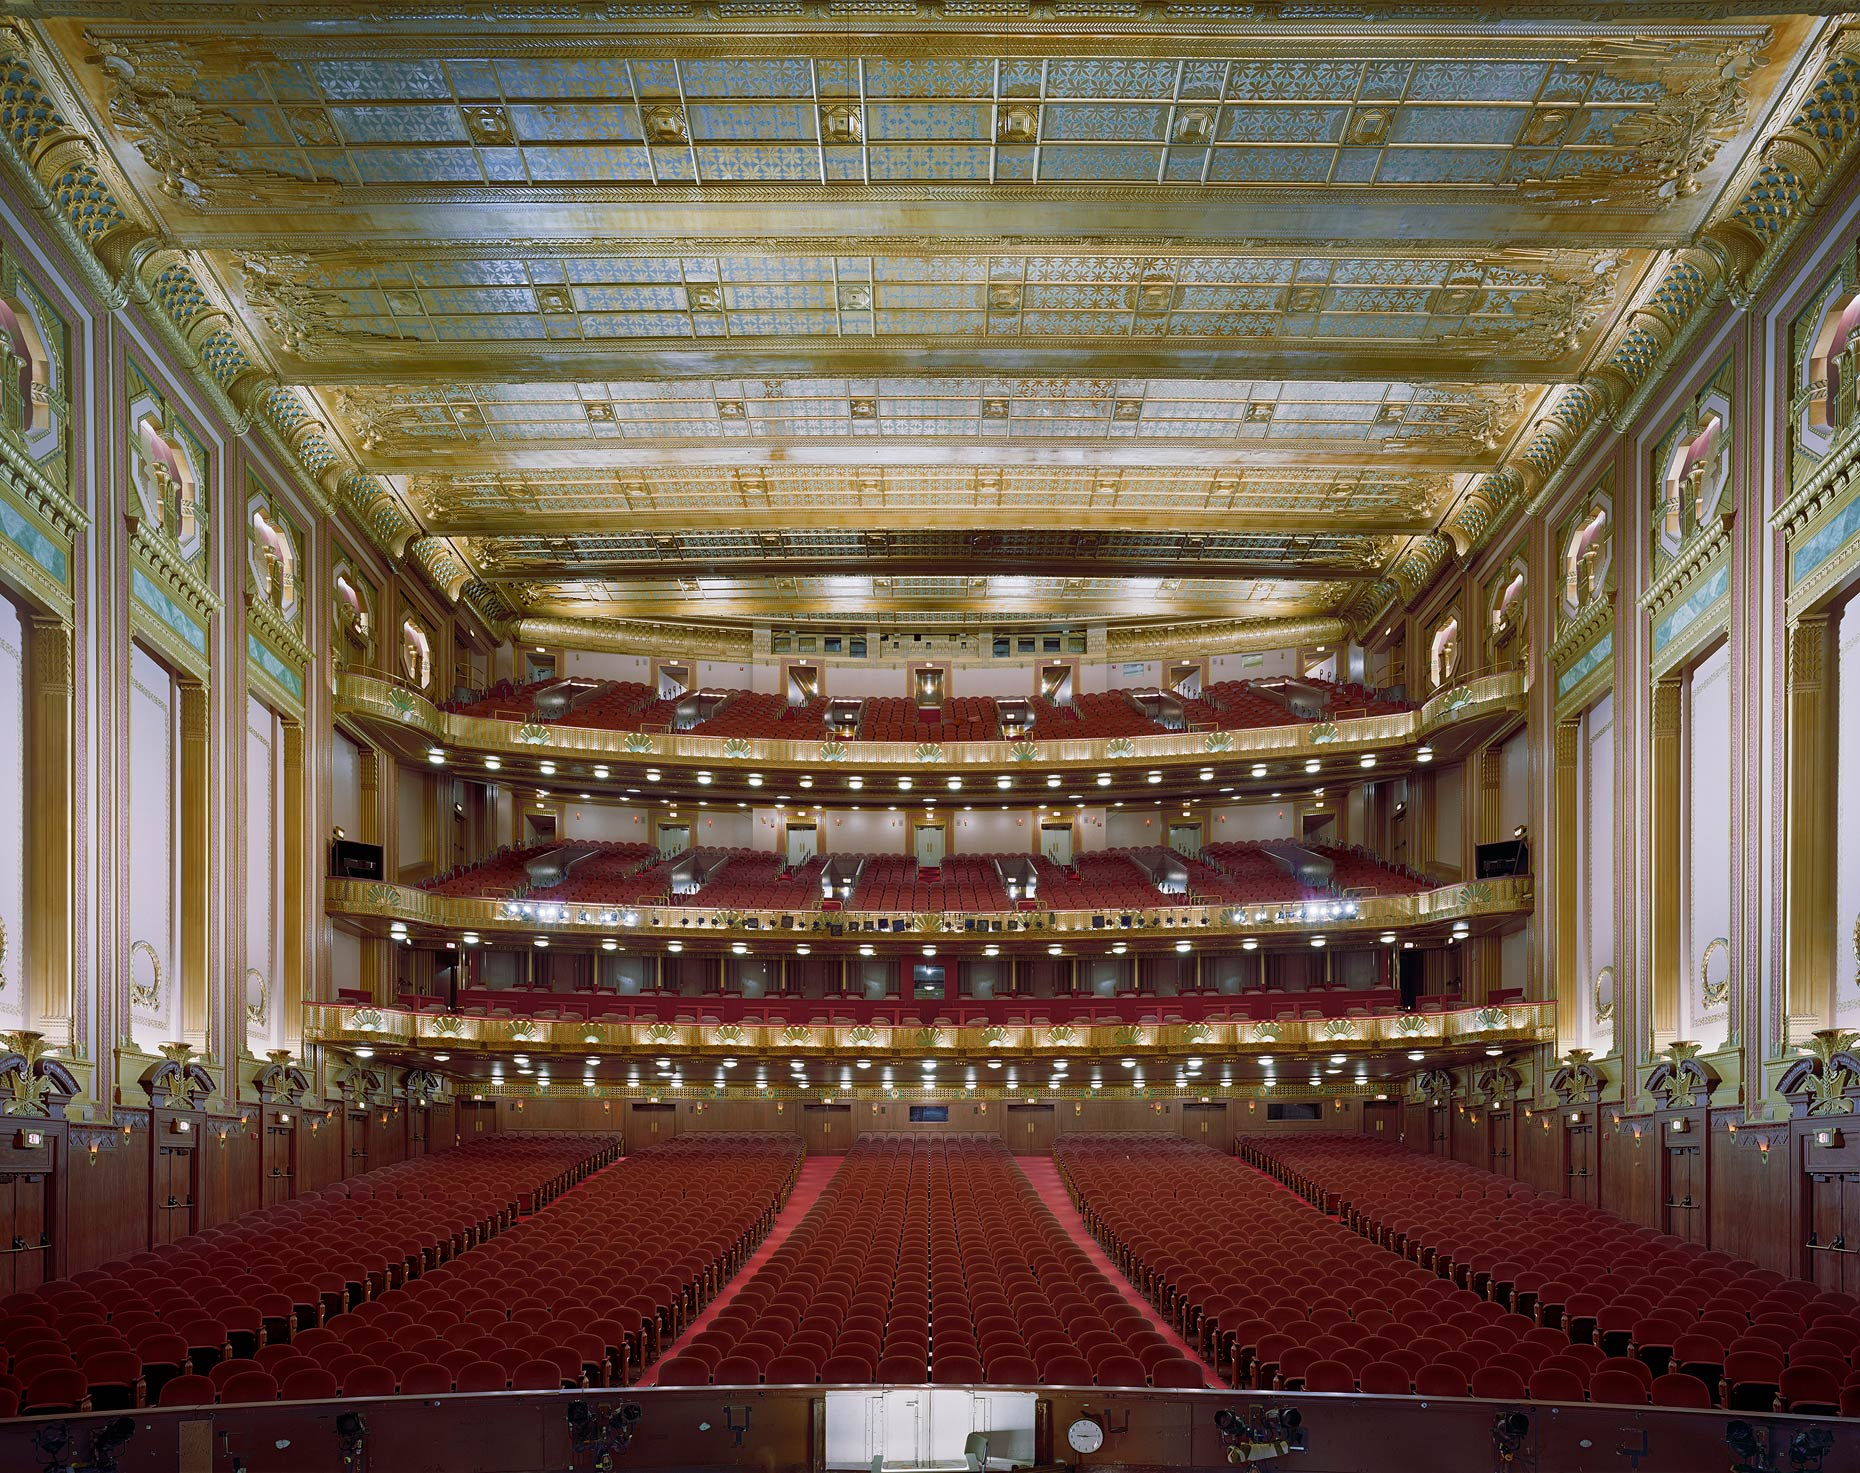 Civic Opera House, Chicago, United States, 2009